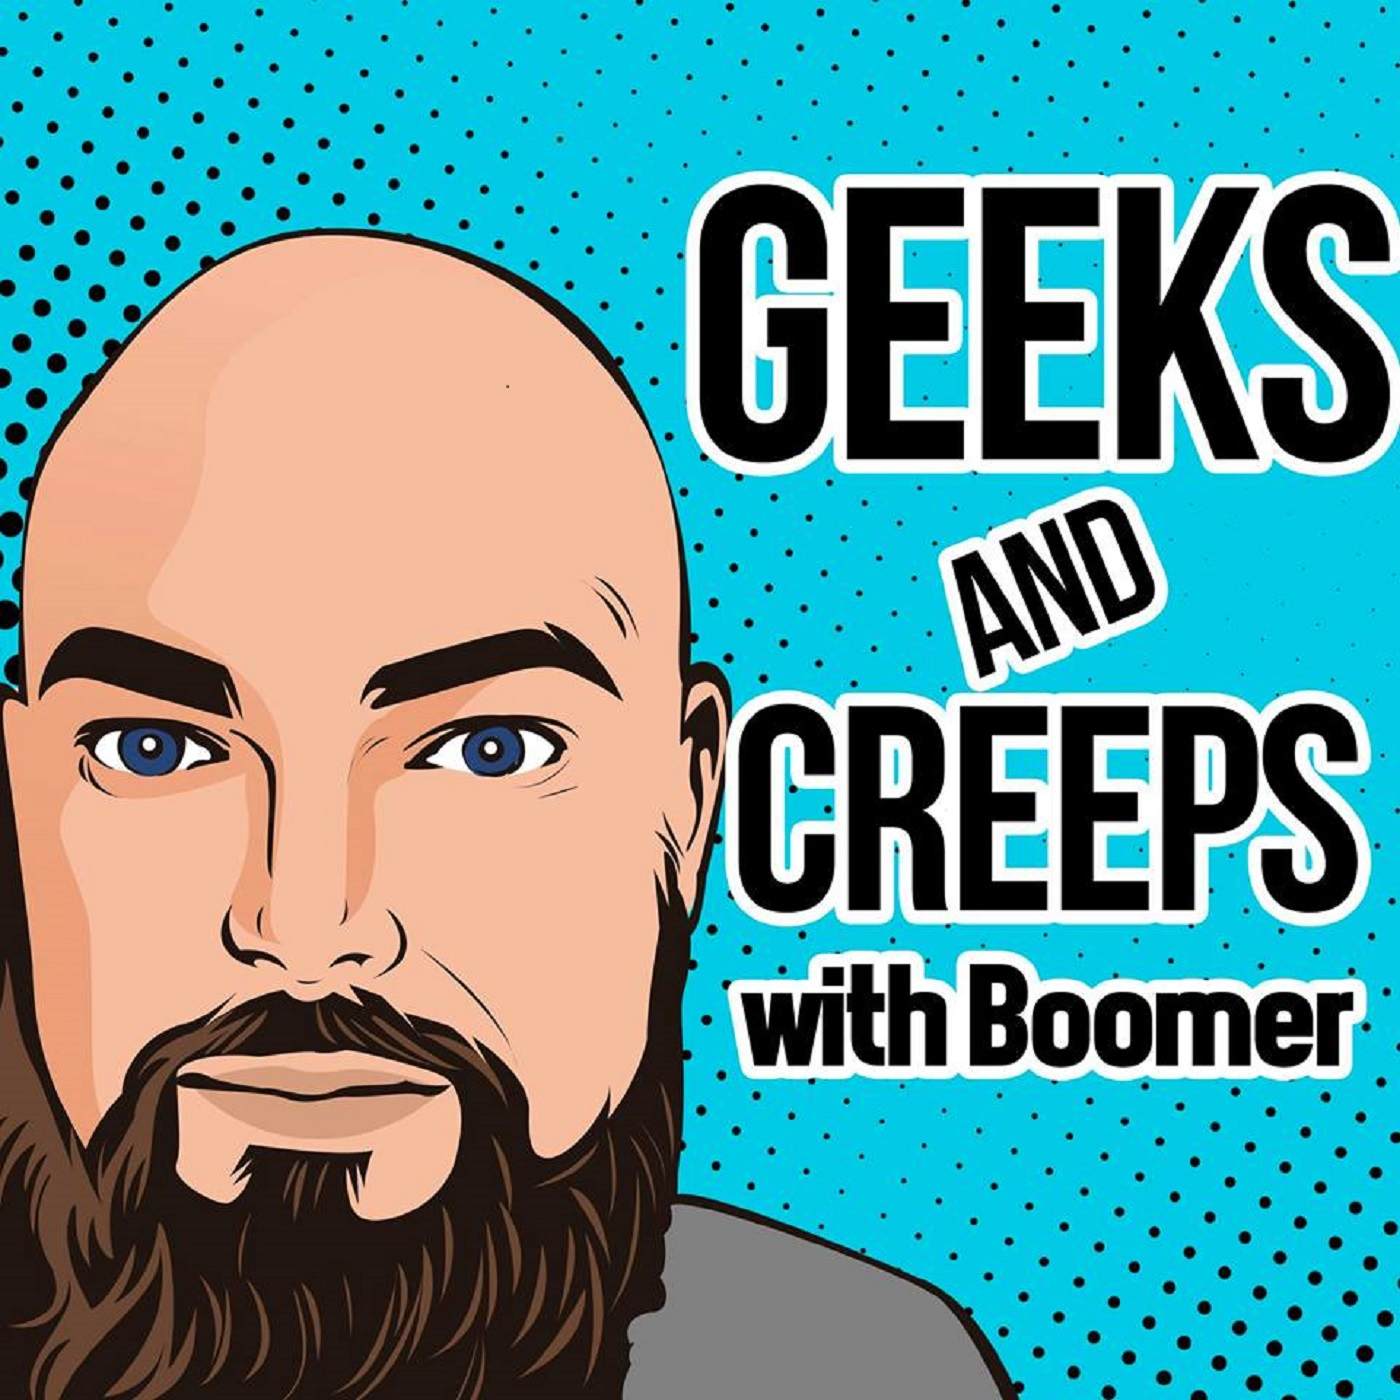 Geeks and Creeps Episode 4 show art